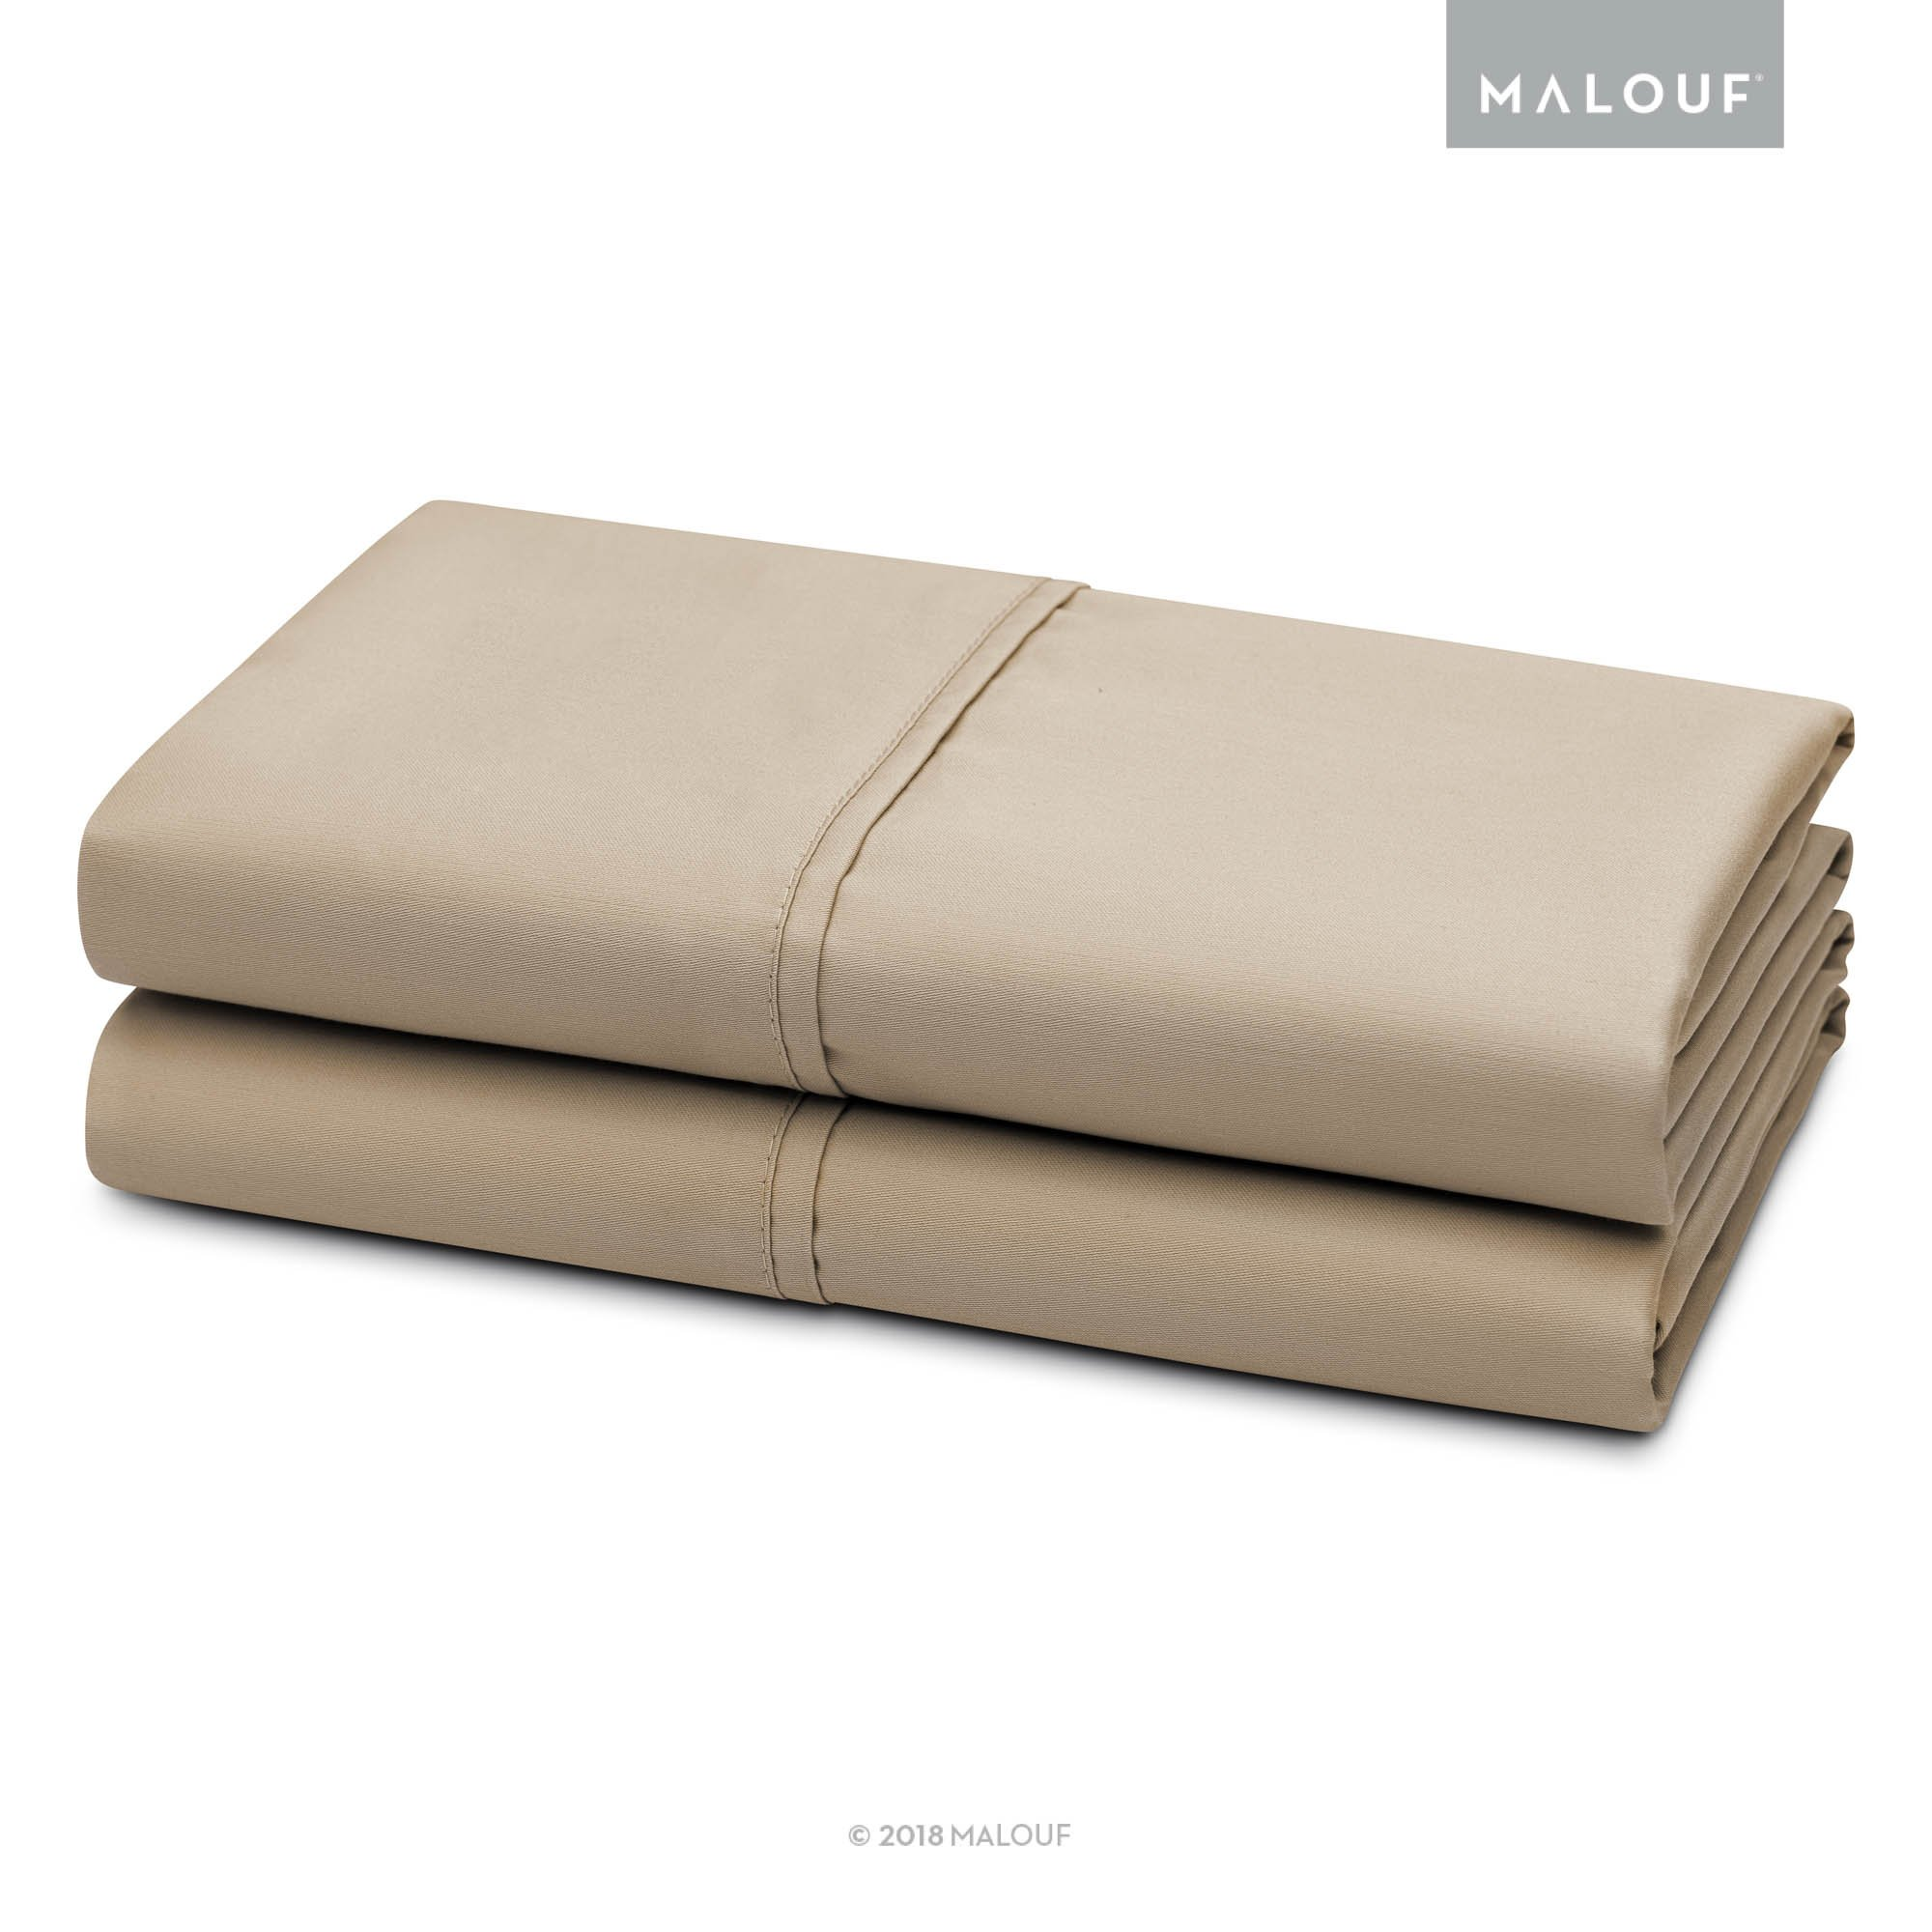 MALOUF WOVEN 600 Thread Count Luxurious Feel Soft Cotton Blend Pillowcase Set - Includes Two (2) Queen Pillowcases - Driftwood